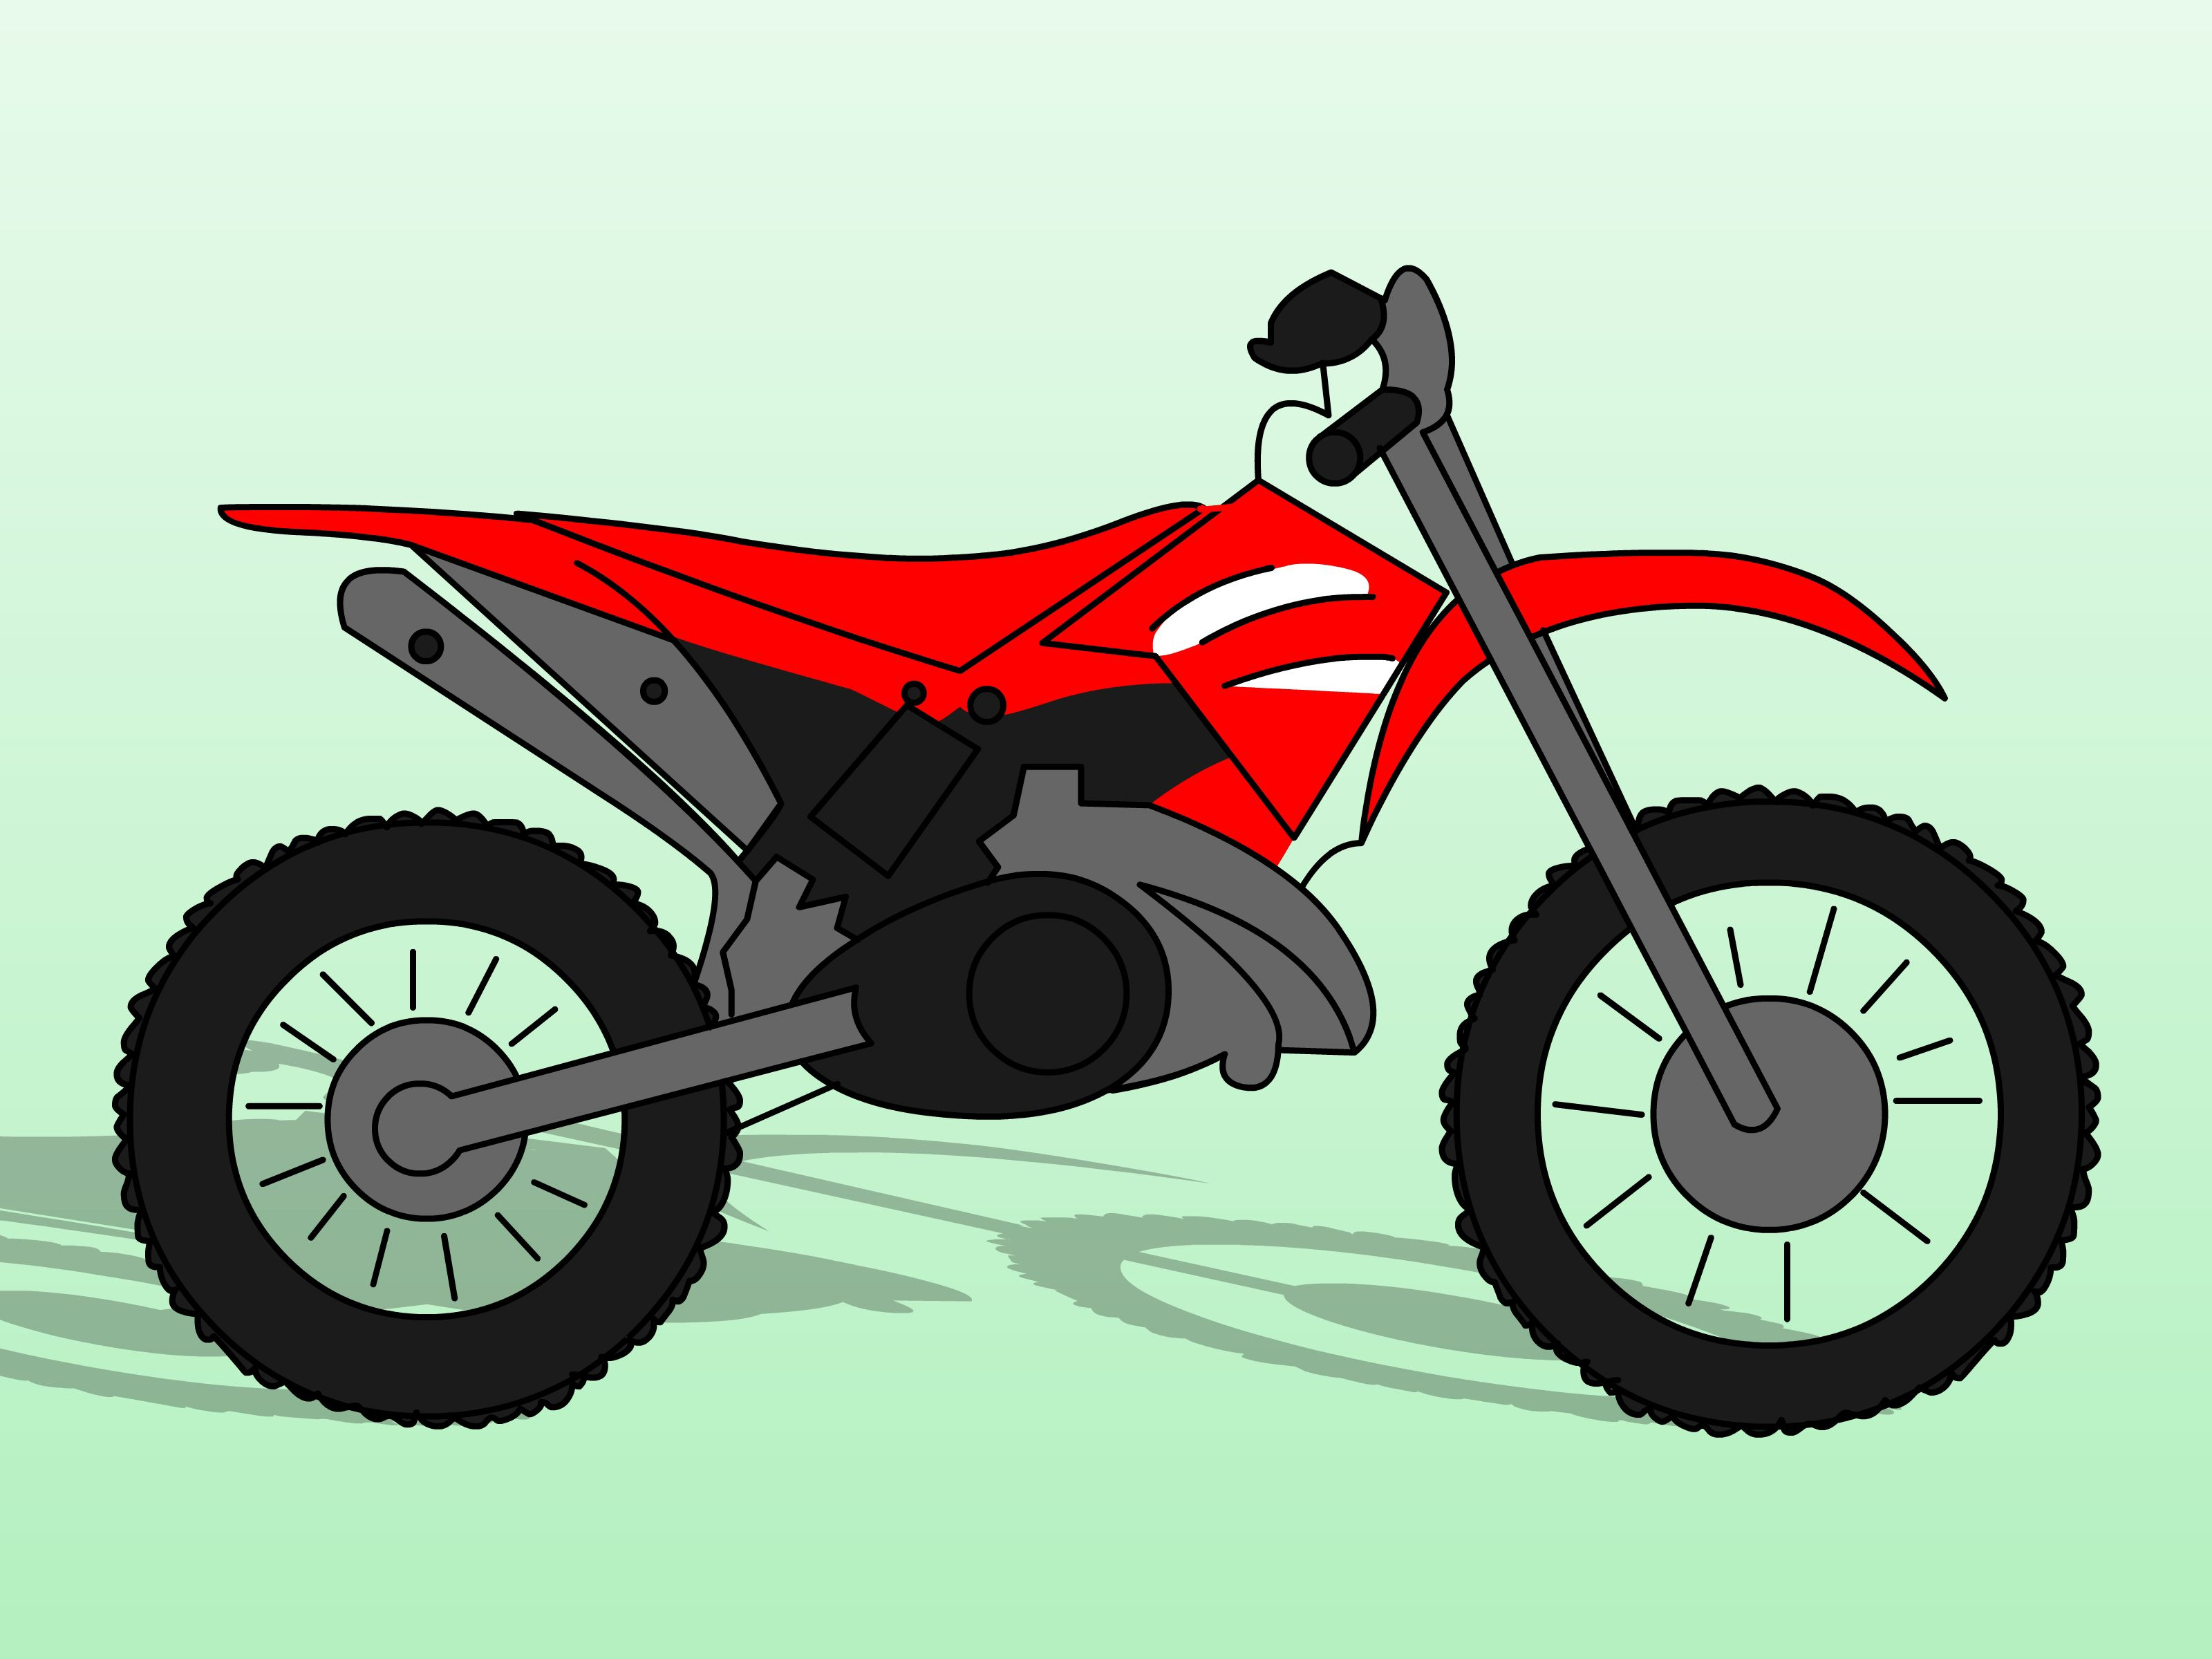 Draw Dirt Bikes Bike Drawing Motorcycle Drawing Dirt Bikes